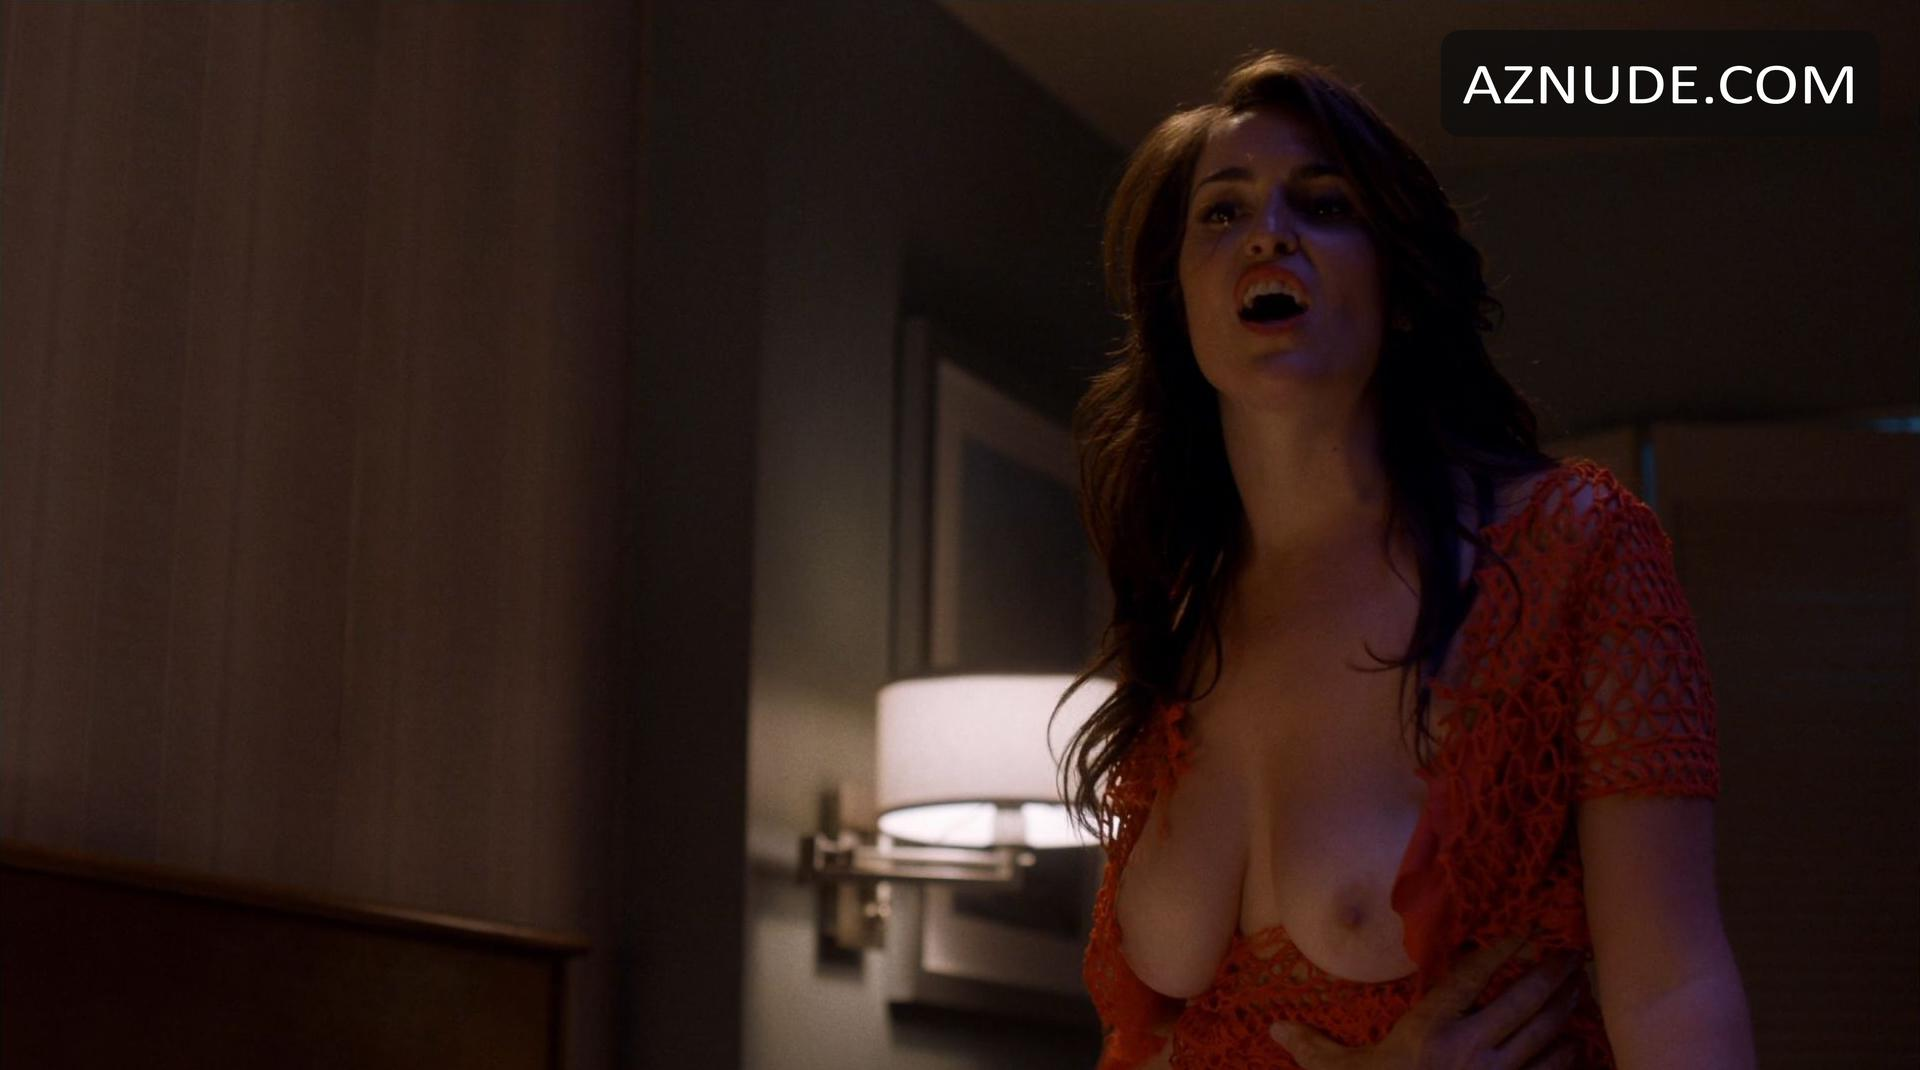 Dominique provost-chalkley topless